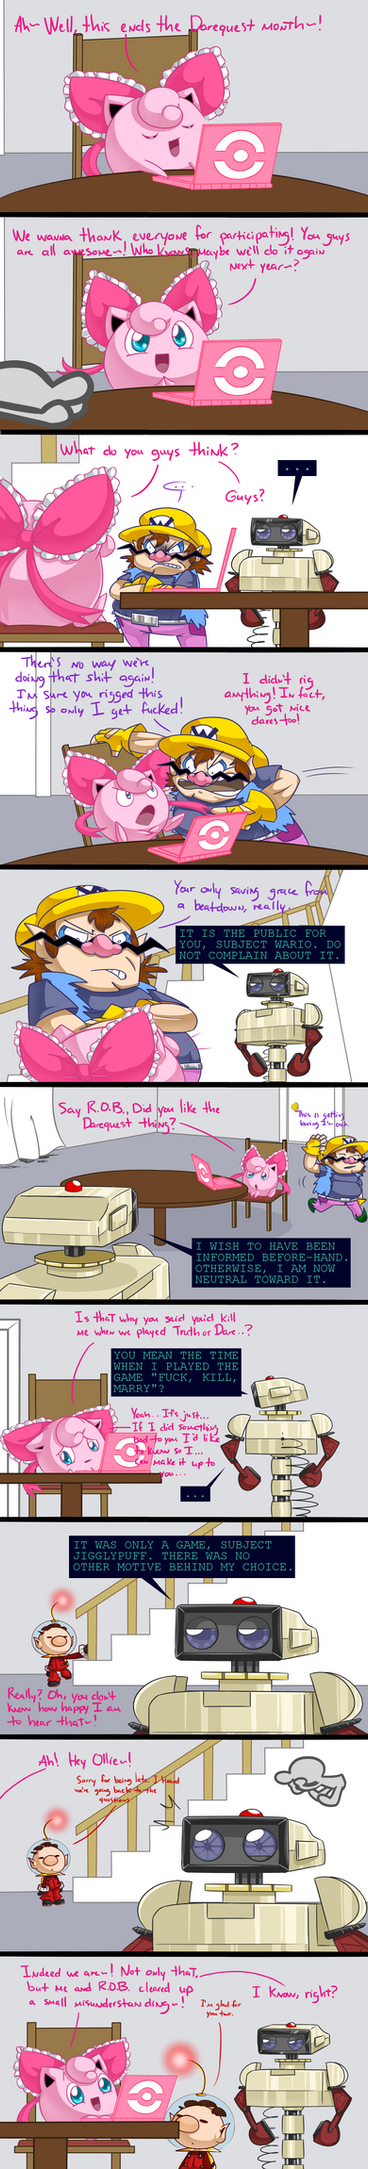 End of the Darequests - Back to the Questions by Oddballs-Of-Smash